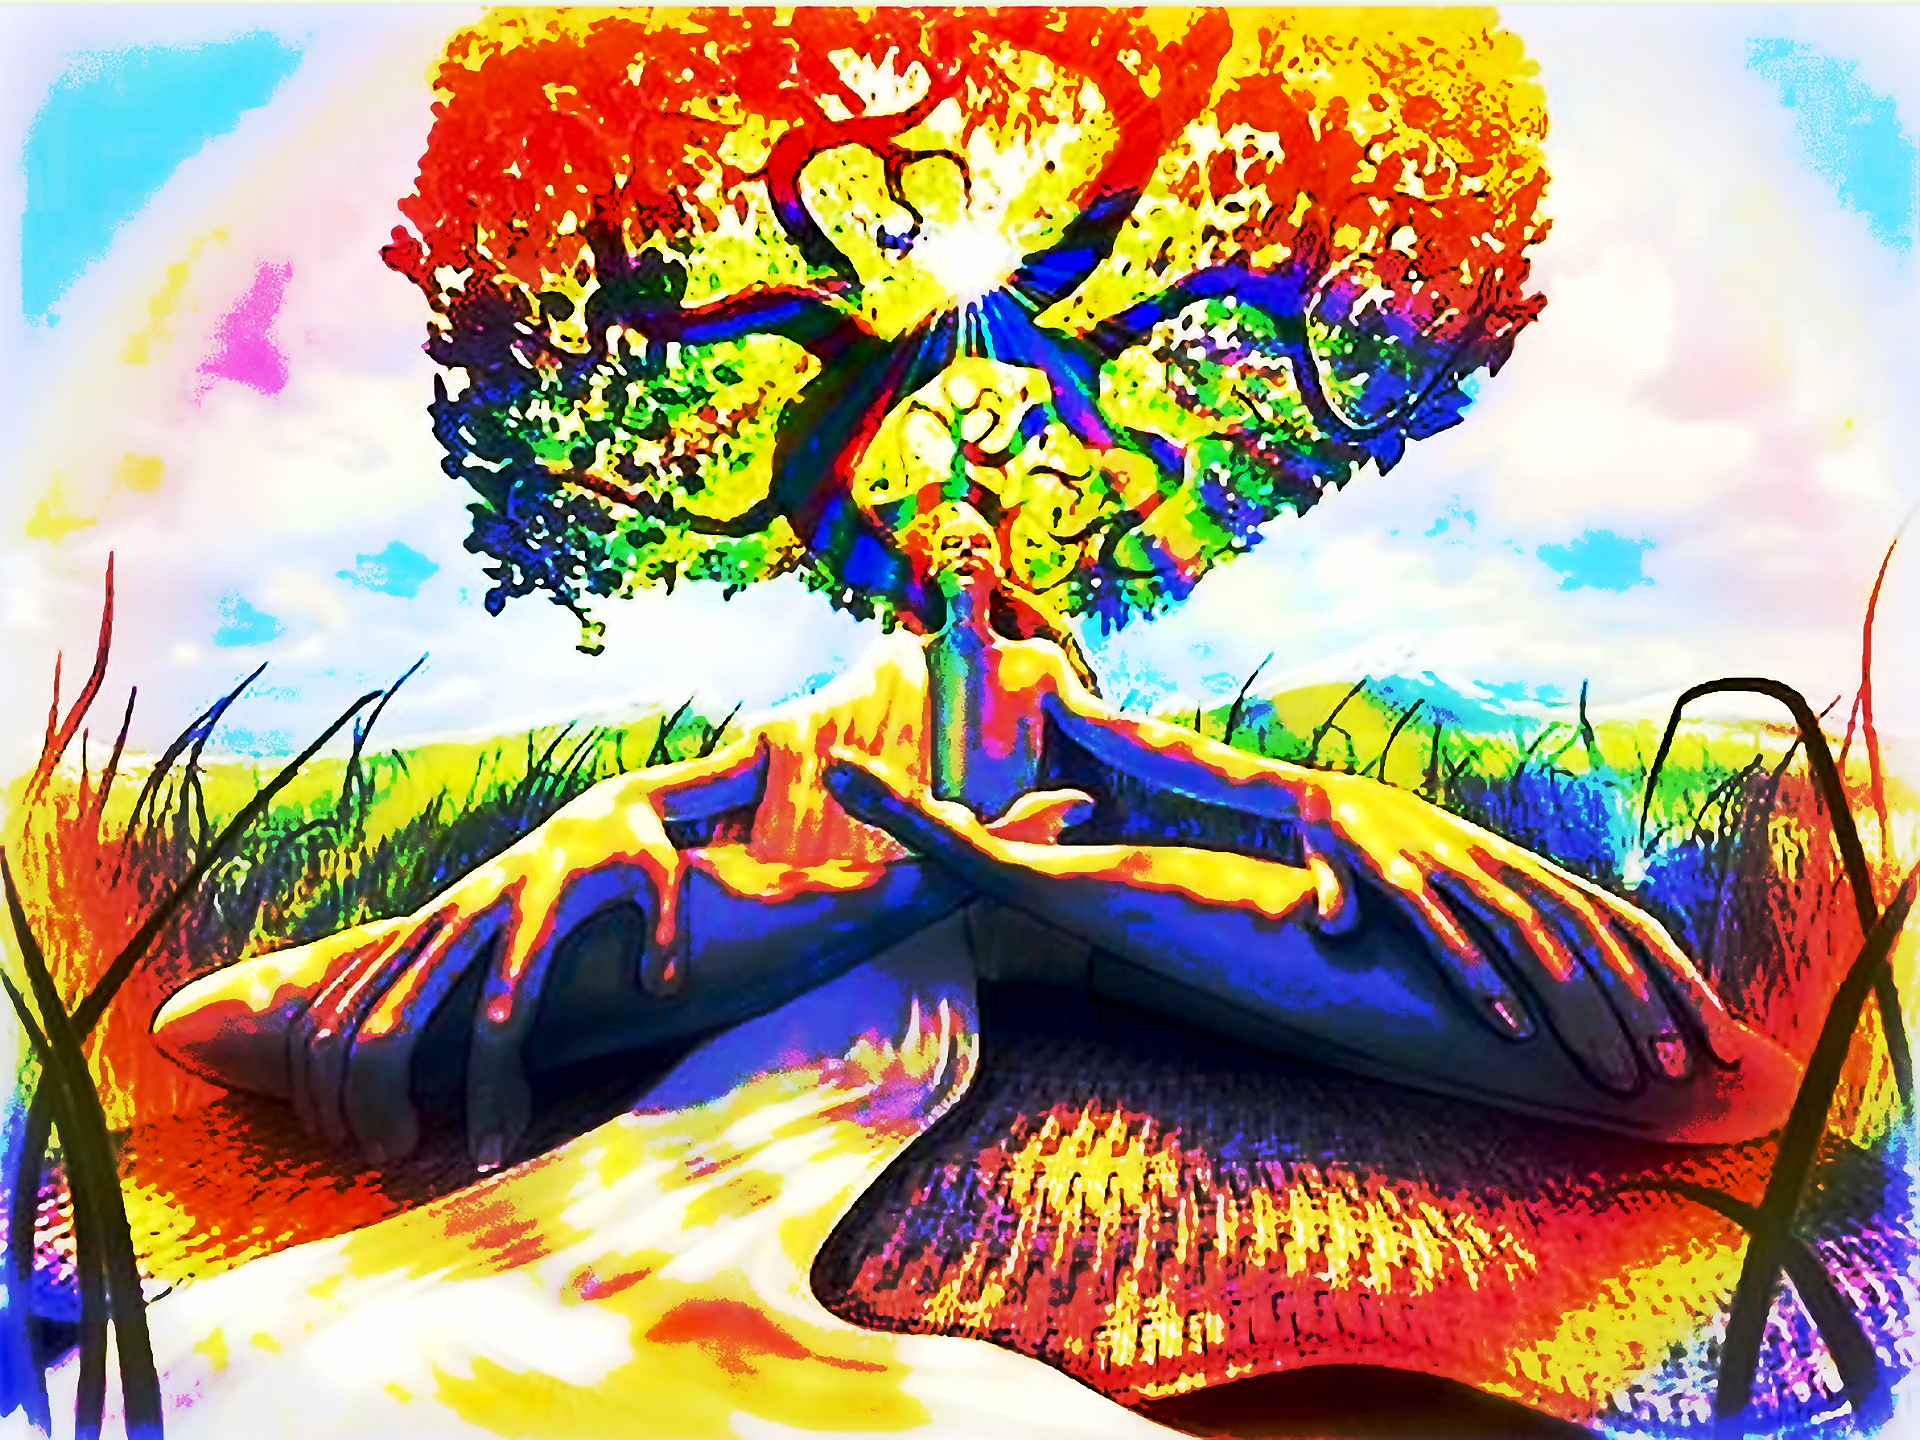 Artistic   Psychedelic Wallpaper 1920x1440